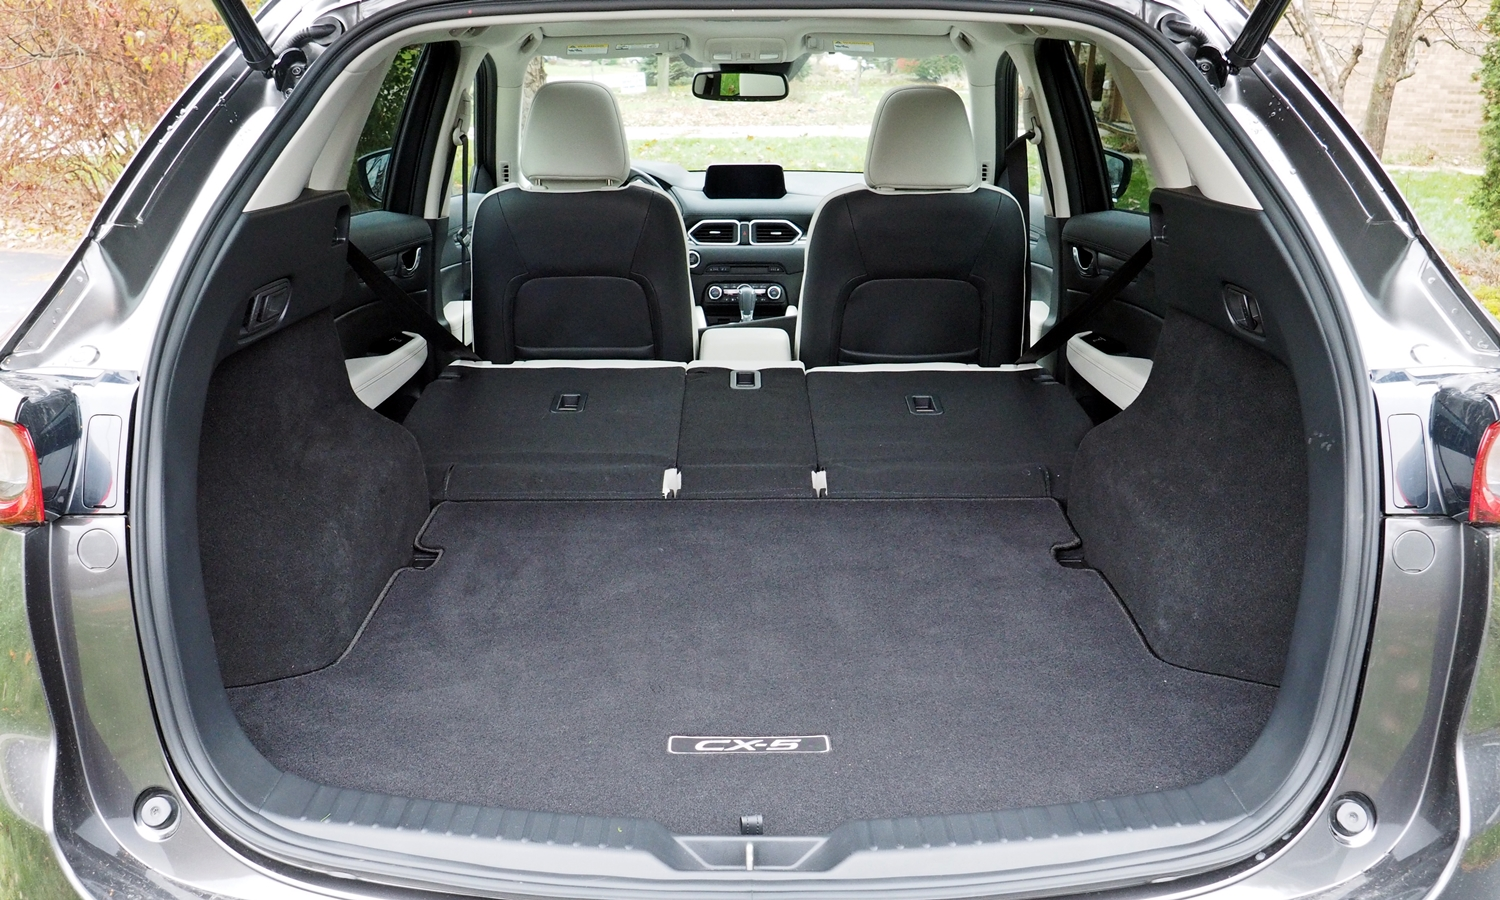 CX-5 Reviews: 2017 Mazda CX-5 cargo area seats folded.